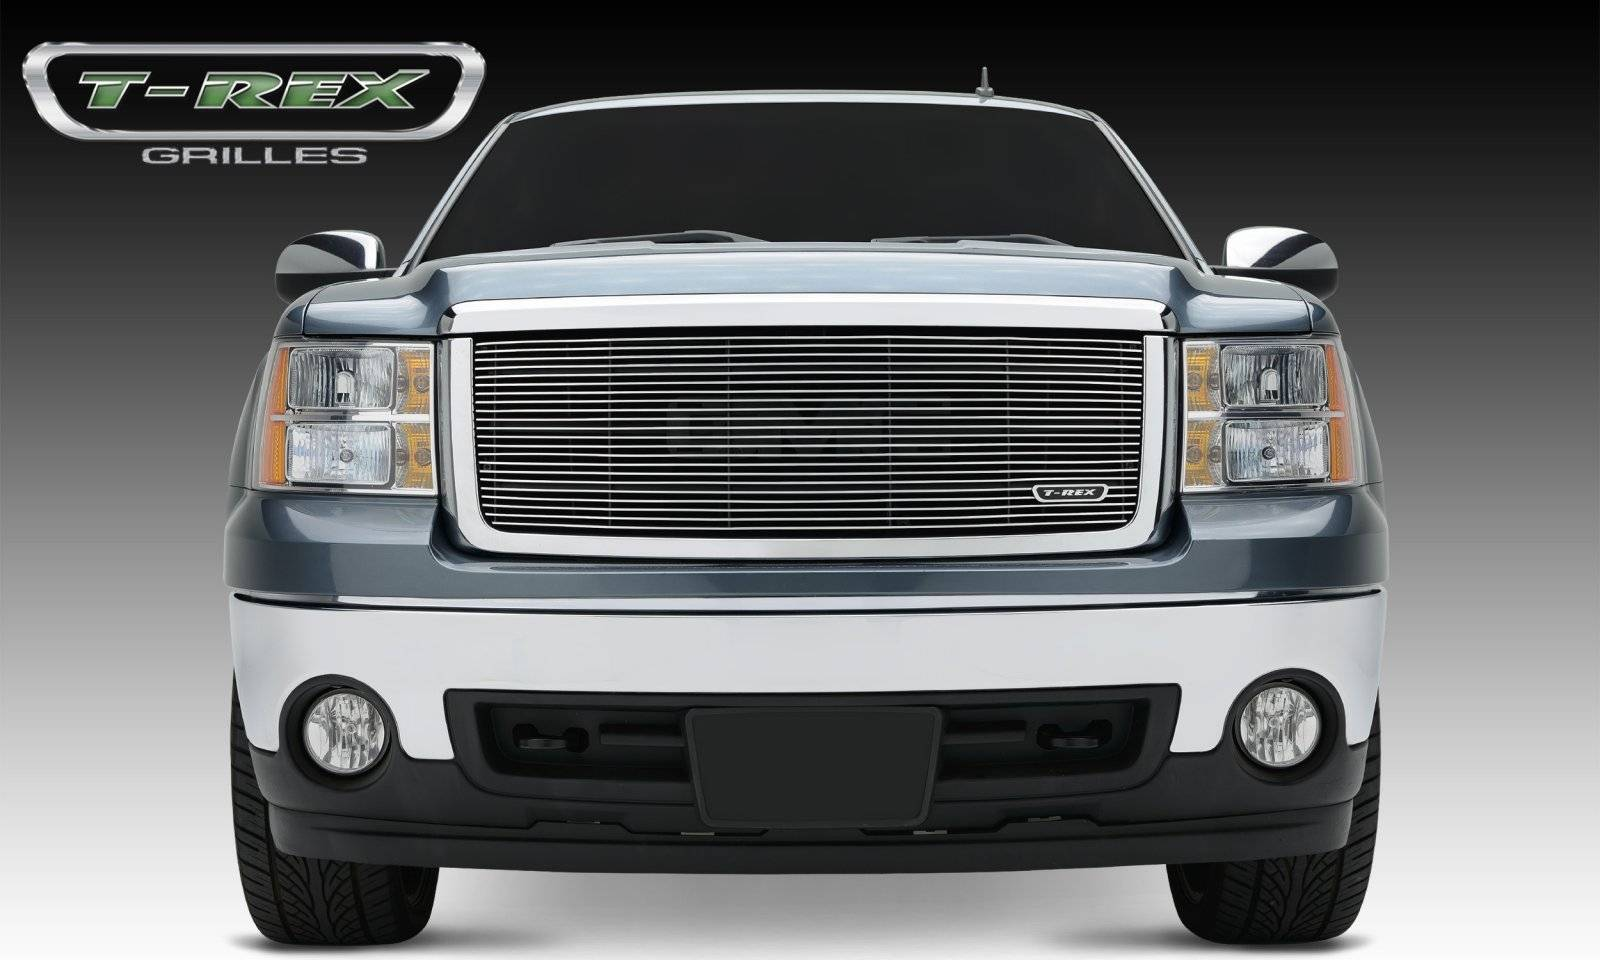 T-REX GMC Sierra All Terrain Package Billet Grille Insert Fits All Terrain Trim Package Only - Pt # 20204